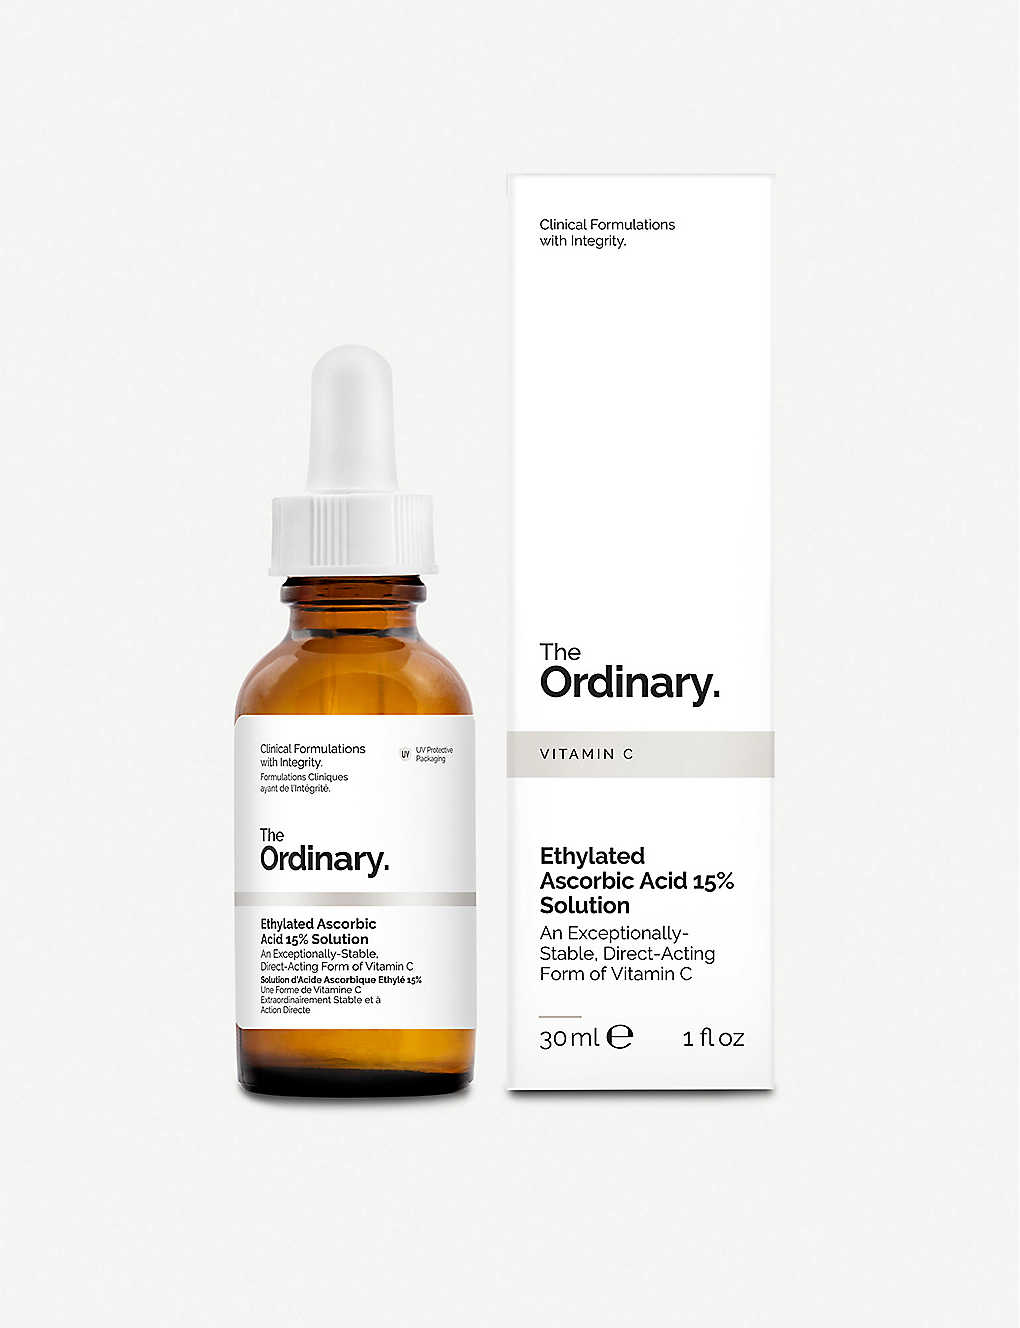 THE ORDINARY: Ethylated Ascorbic Acid 15% Solution 30ml